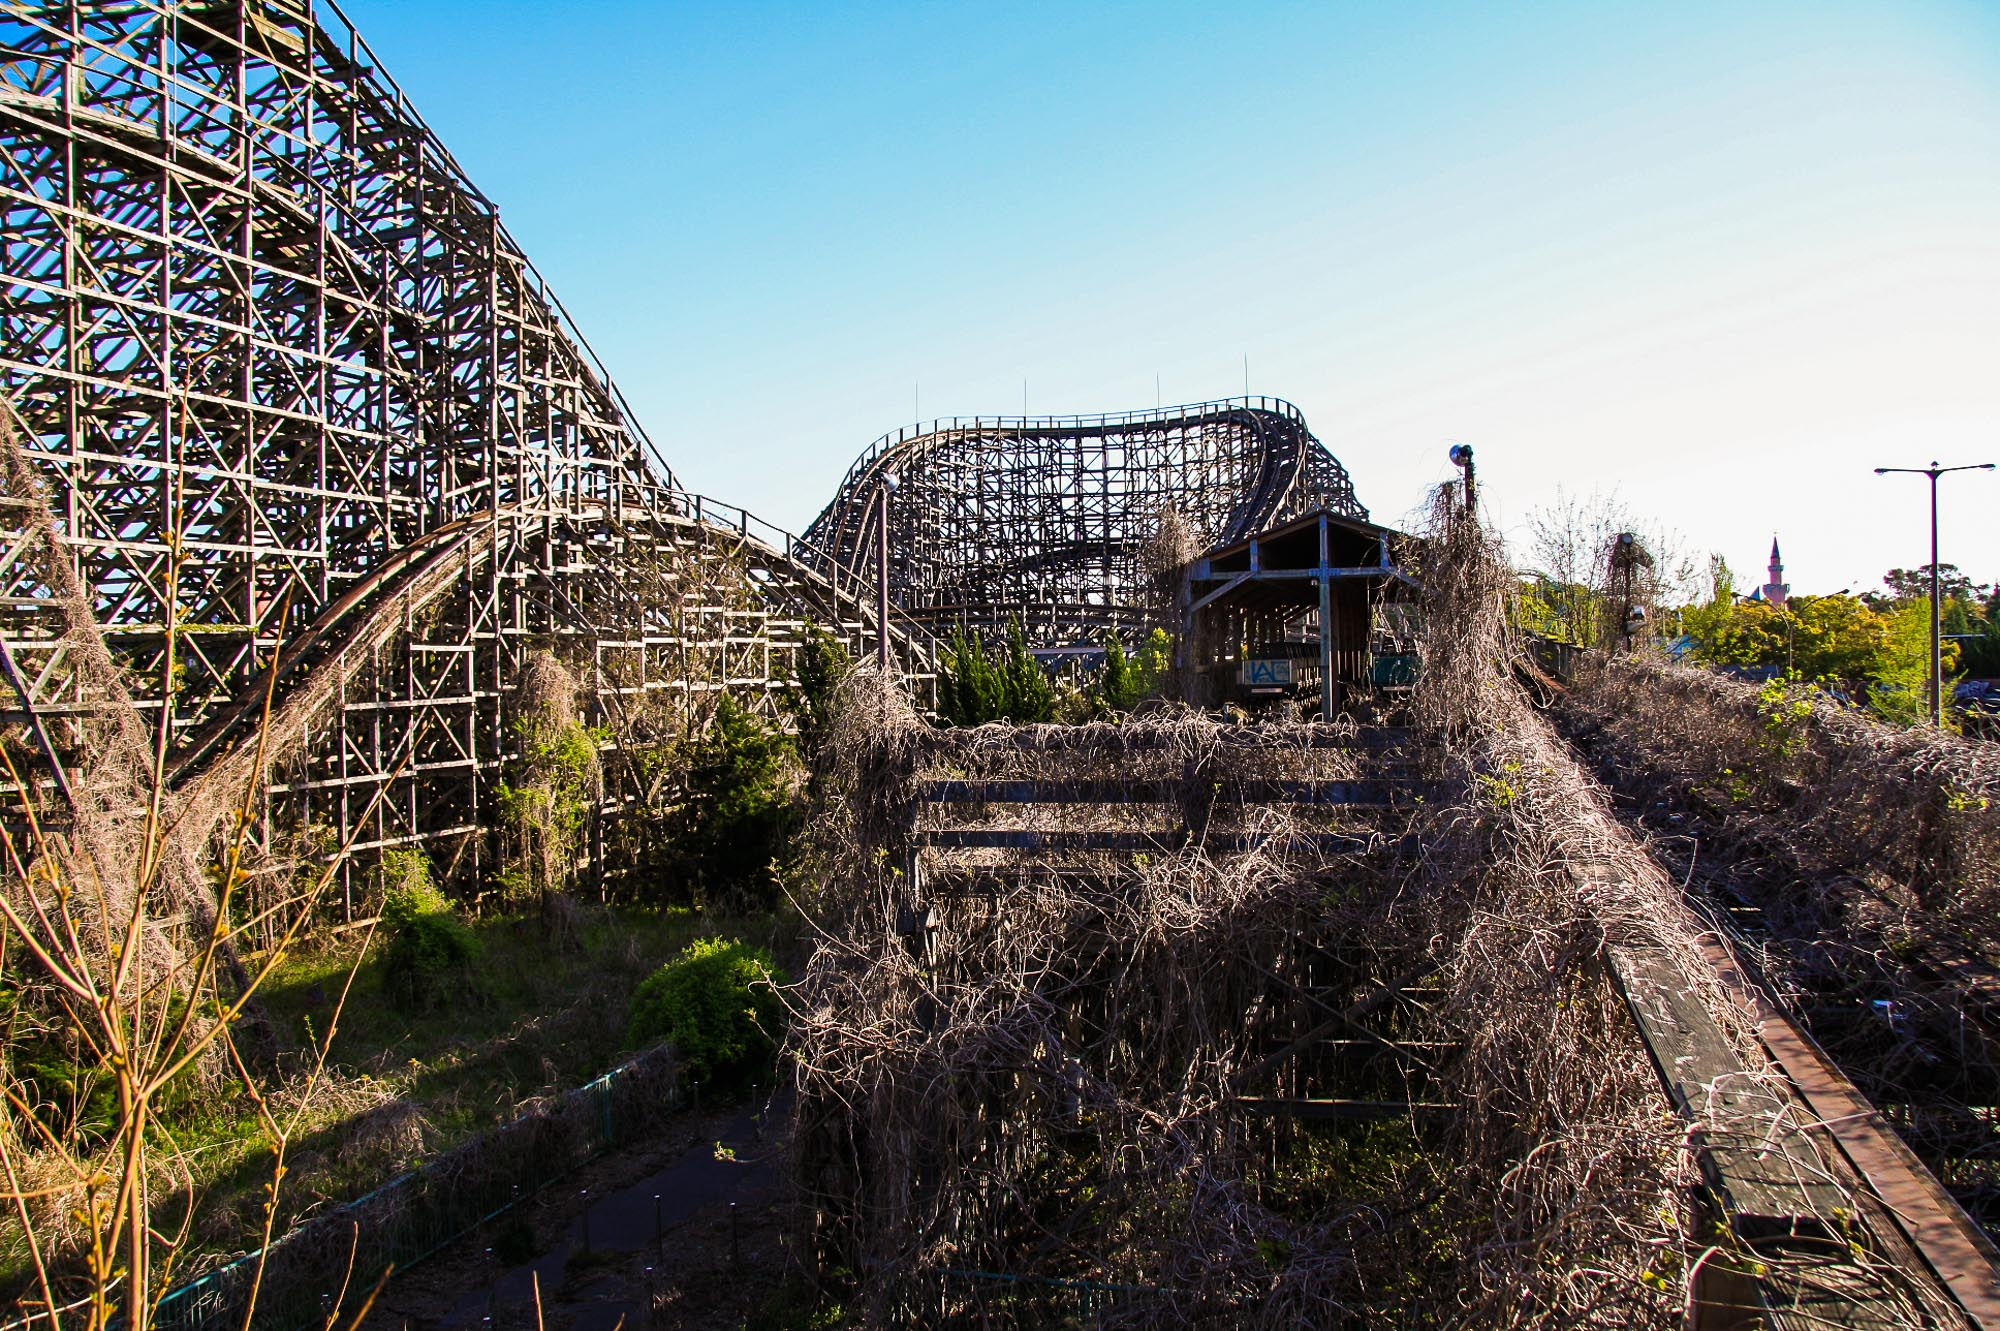 Overgrowth on a roller coaster ride at Nara Dreamland